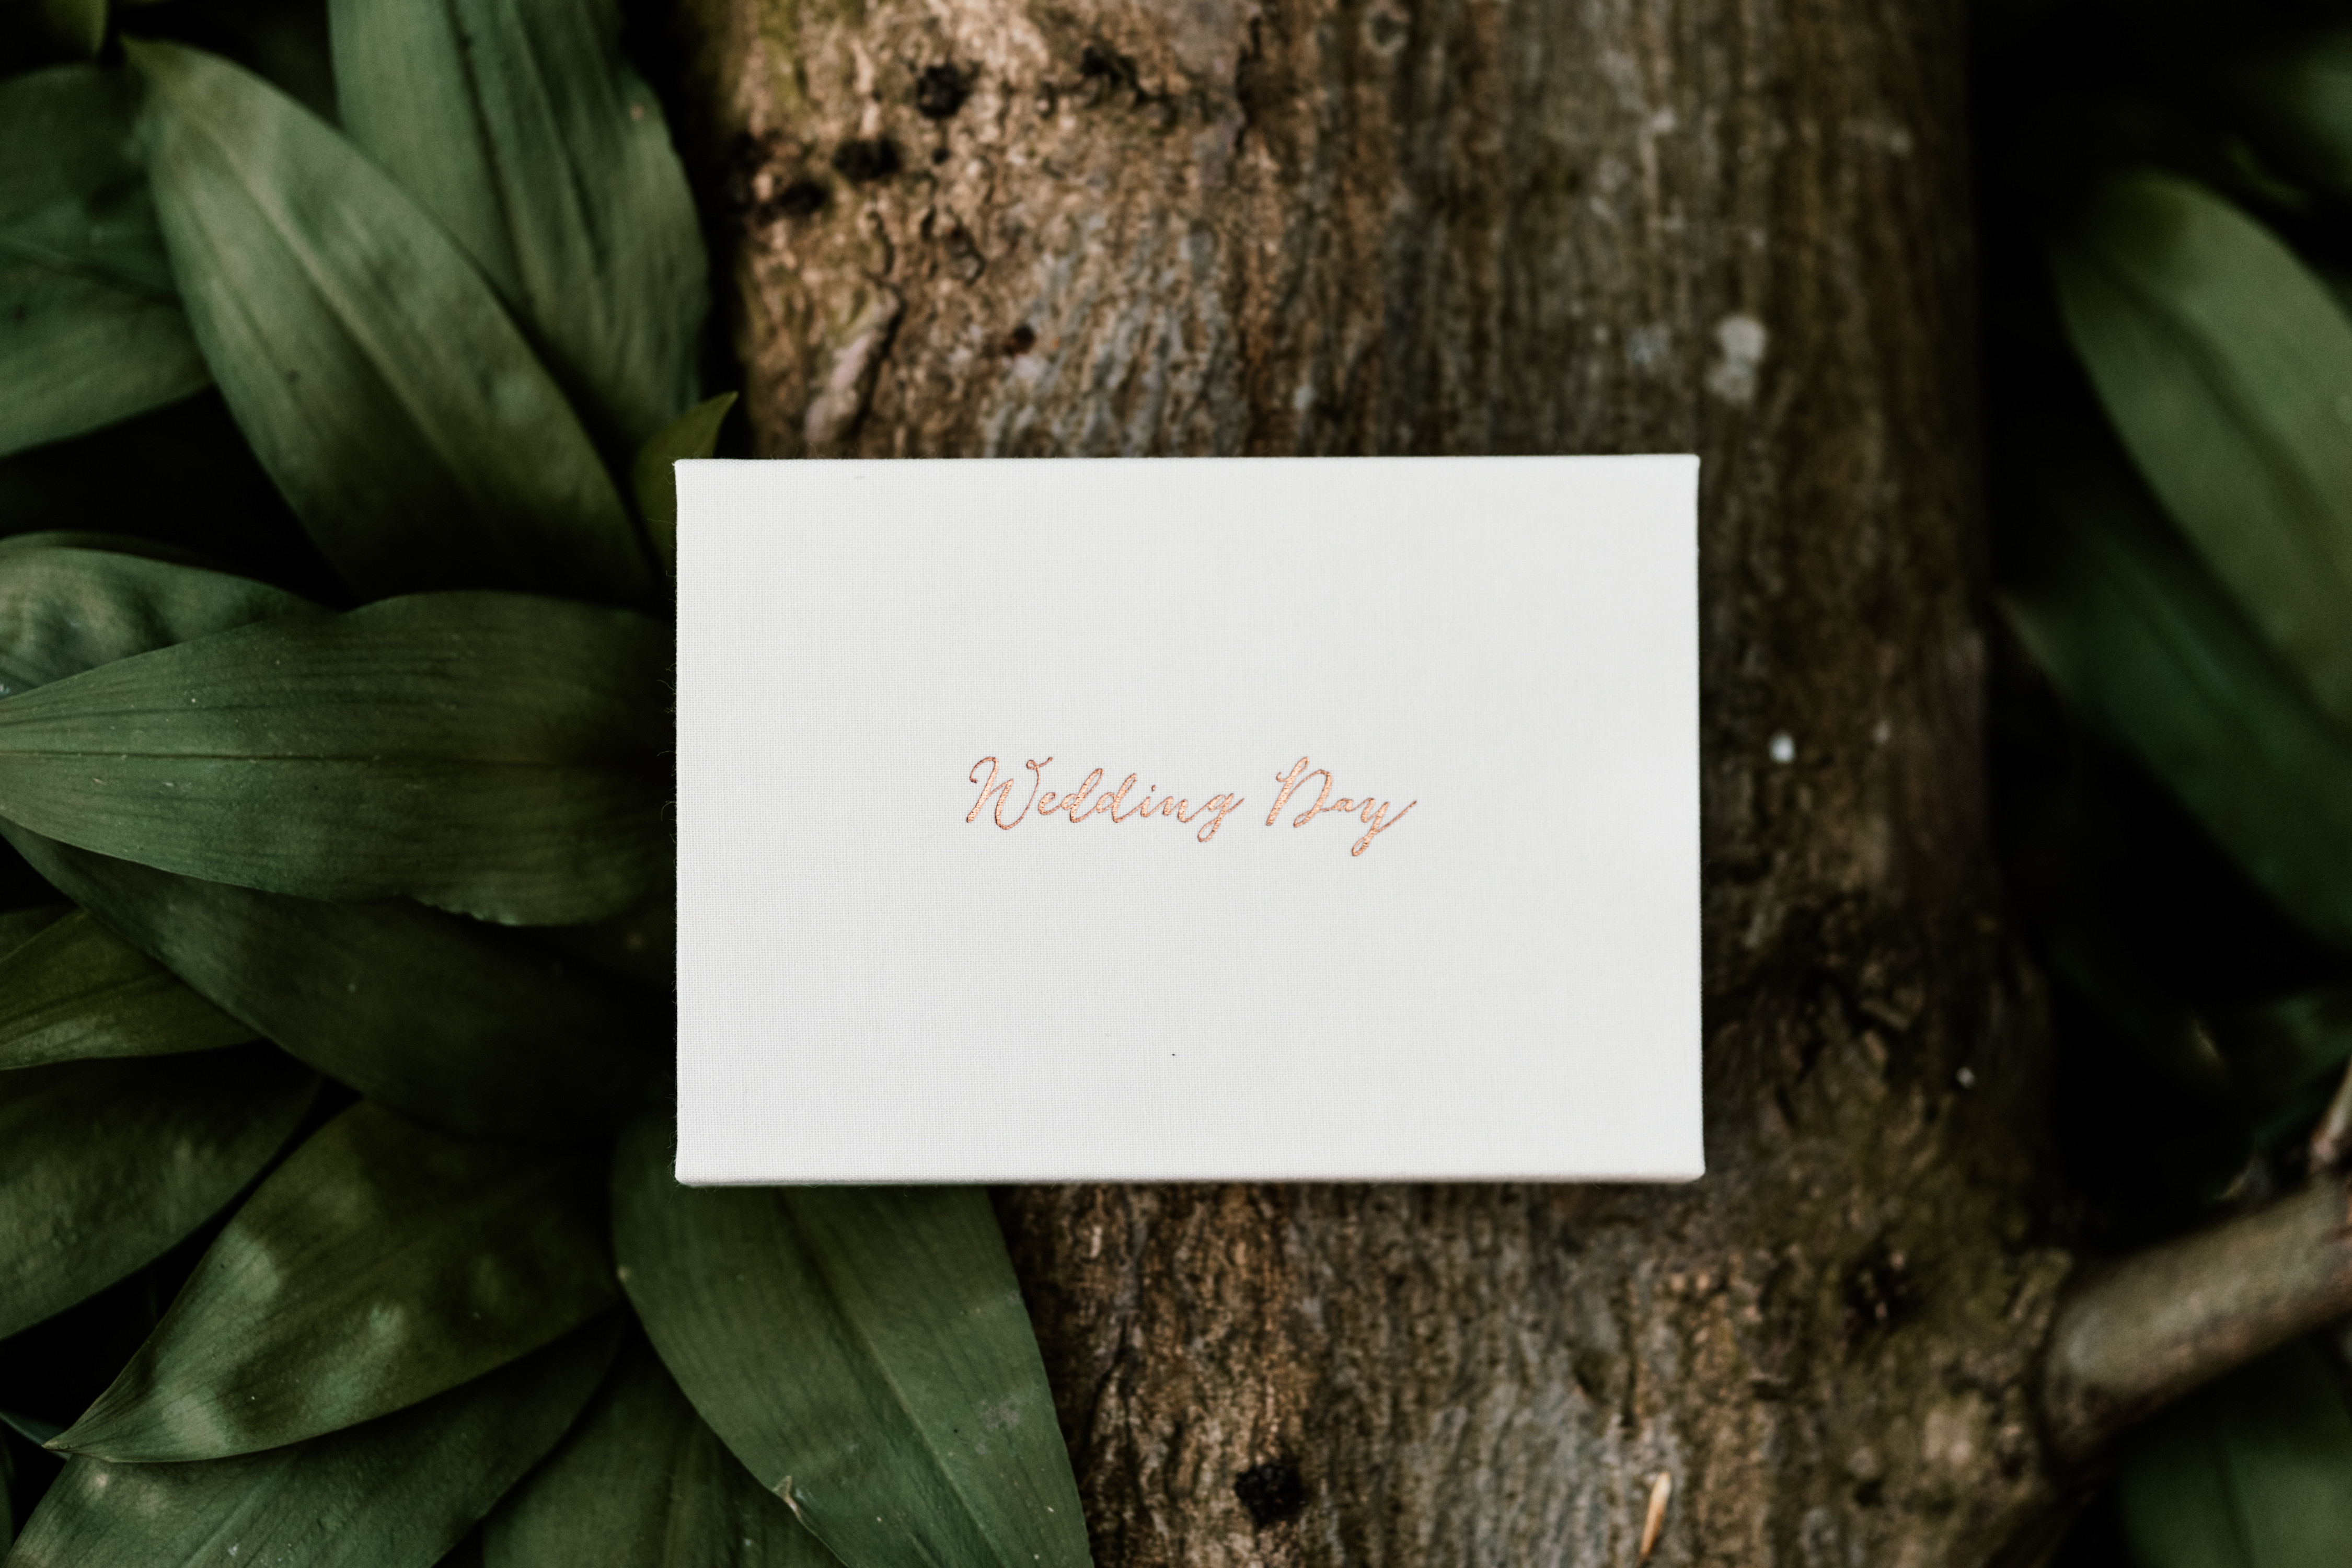 Full Day Wedding Photo Package